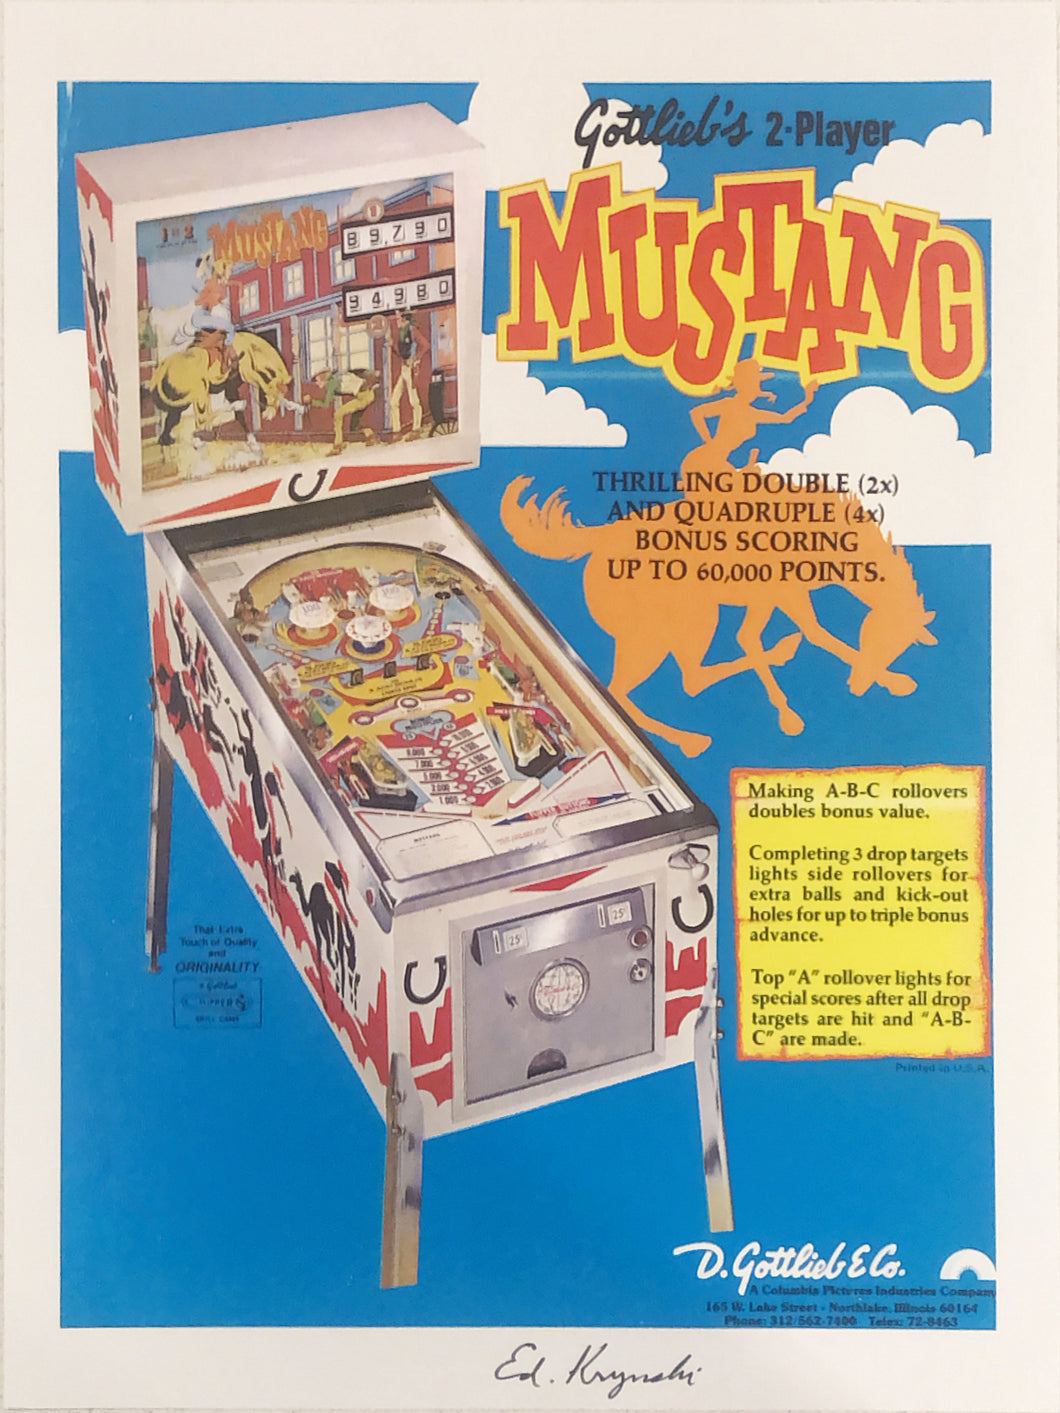 Gottlieb's Mustang Pinball Flyer Signed